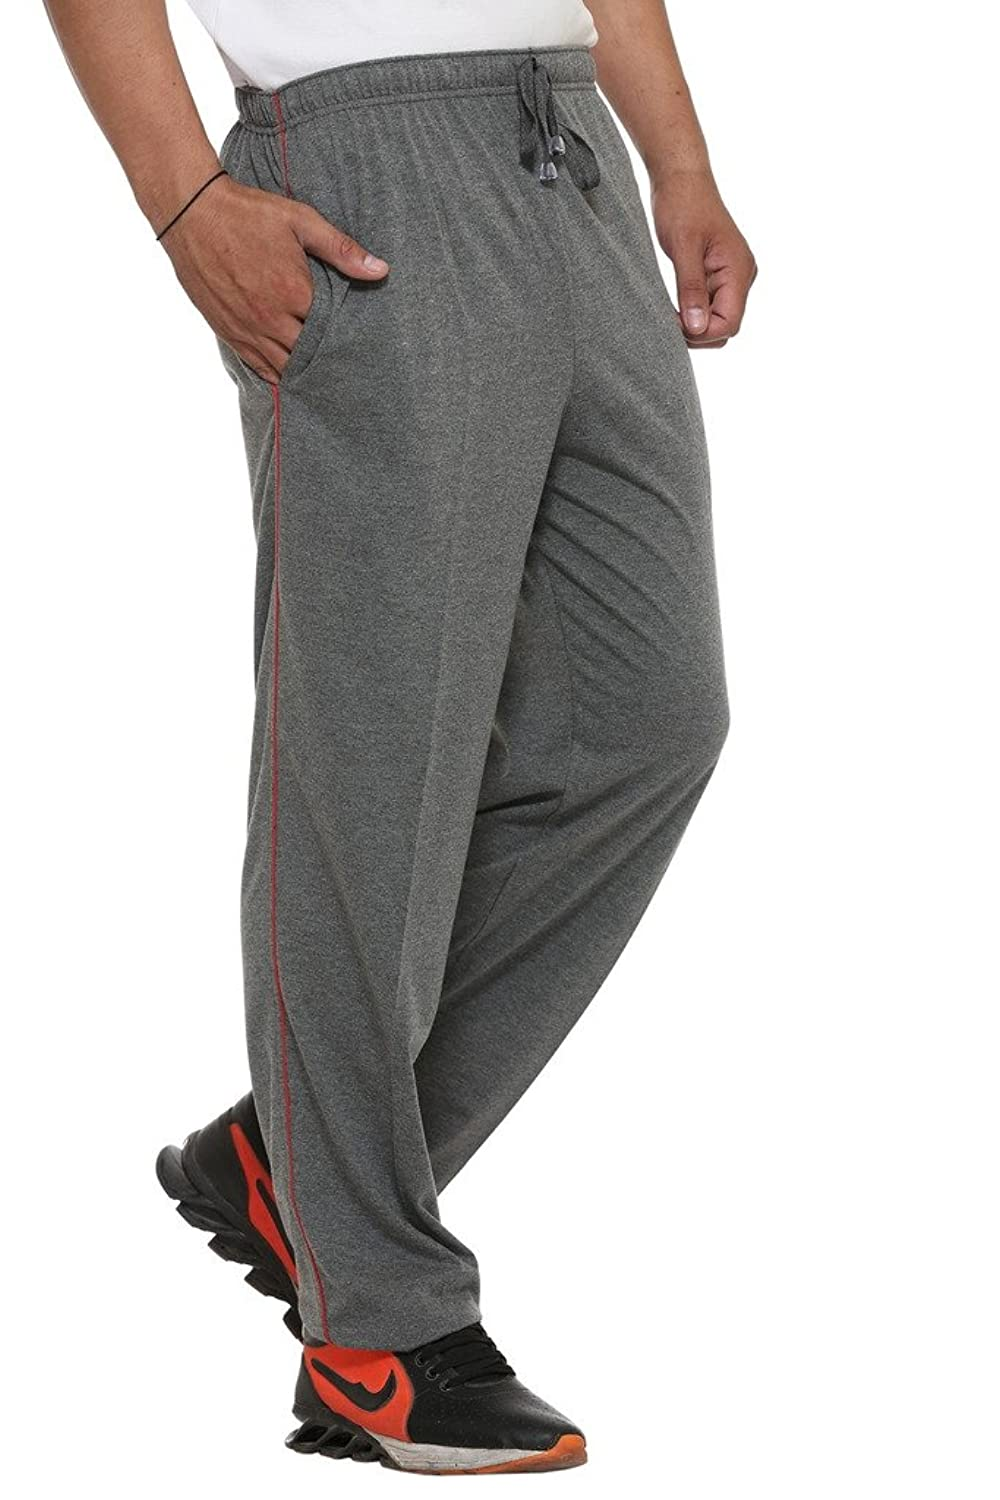 Vimal Cotton Blended Trackpants For Men's